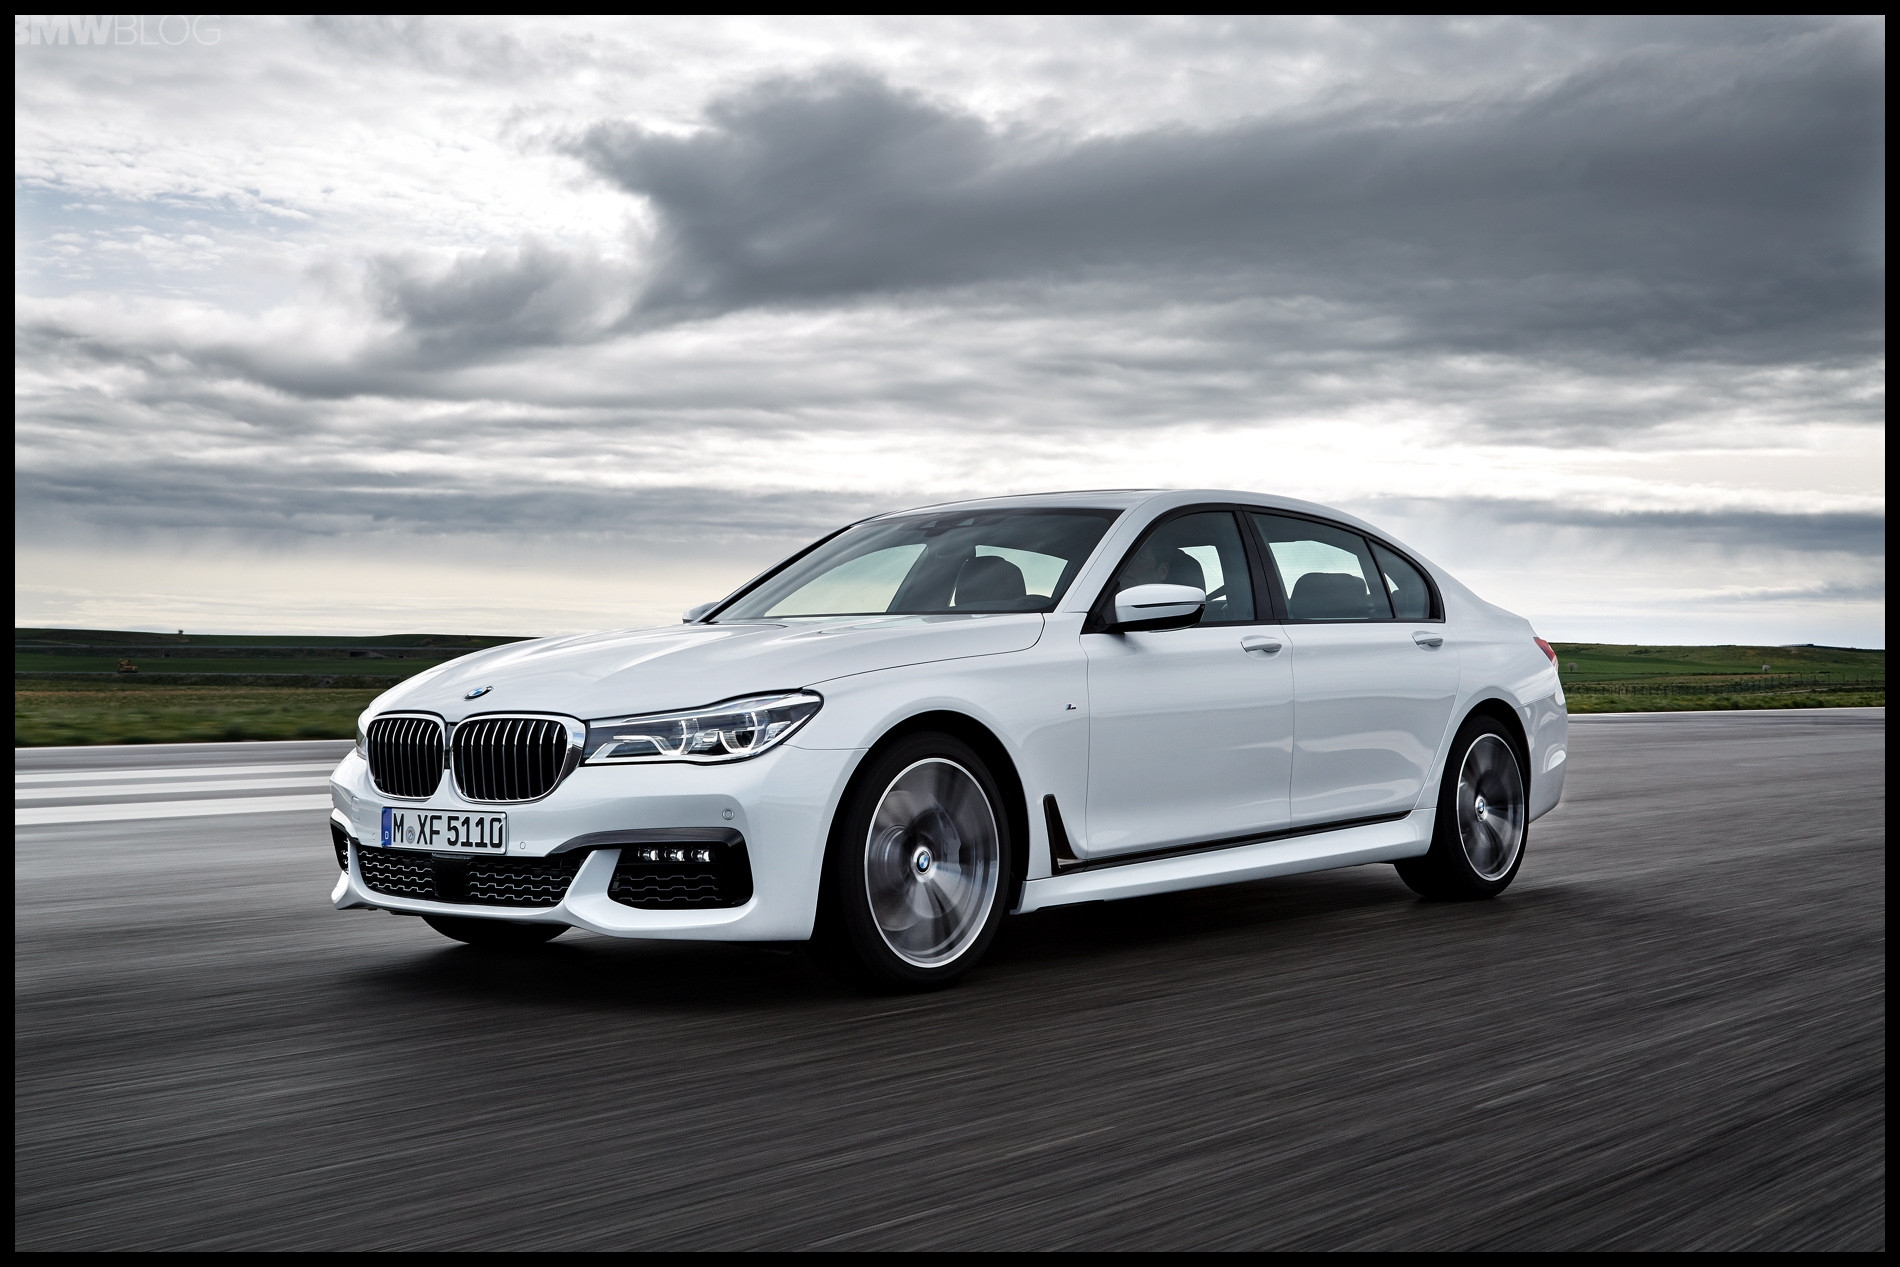 Bmw 750d Price For Quad Turbo Sel Starts At 107 700 Euros Pc Wallpaper Bmw 7 Series 2016 Wallpaper